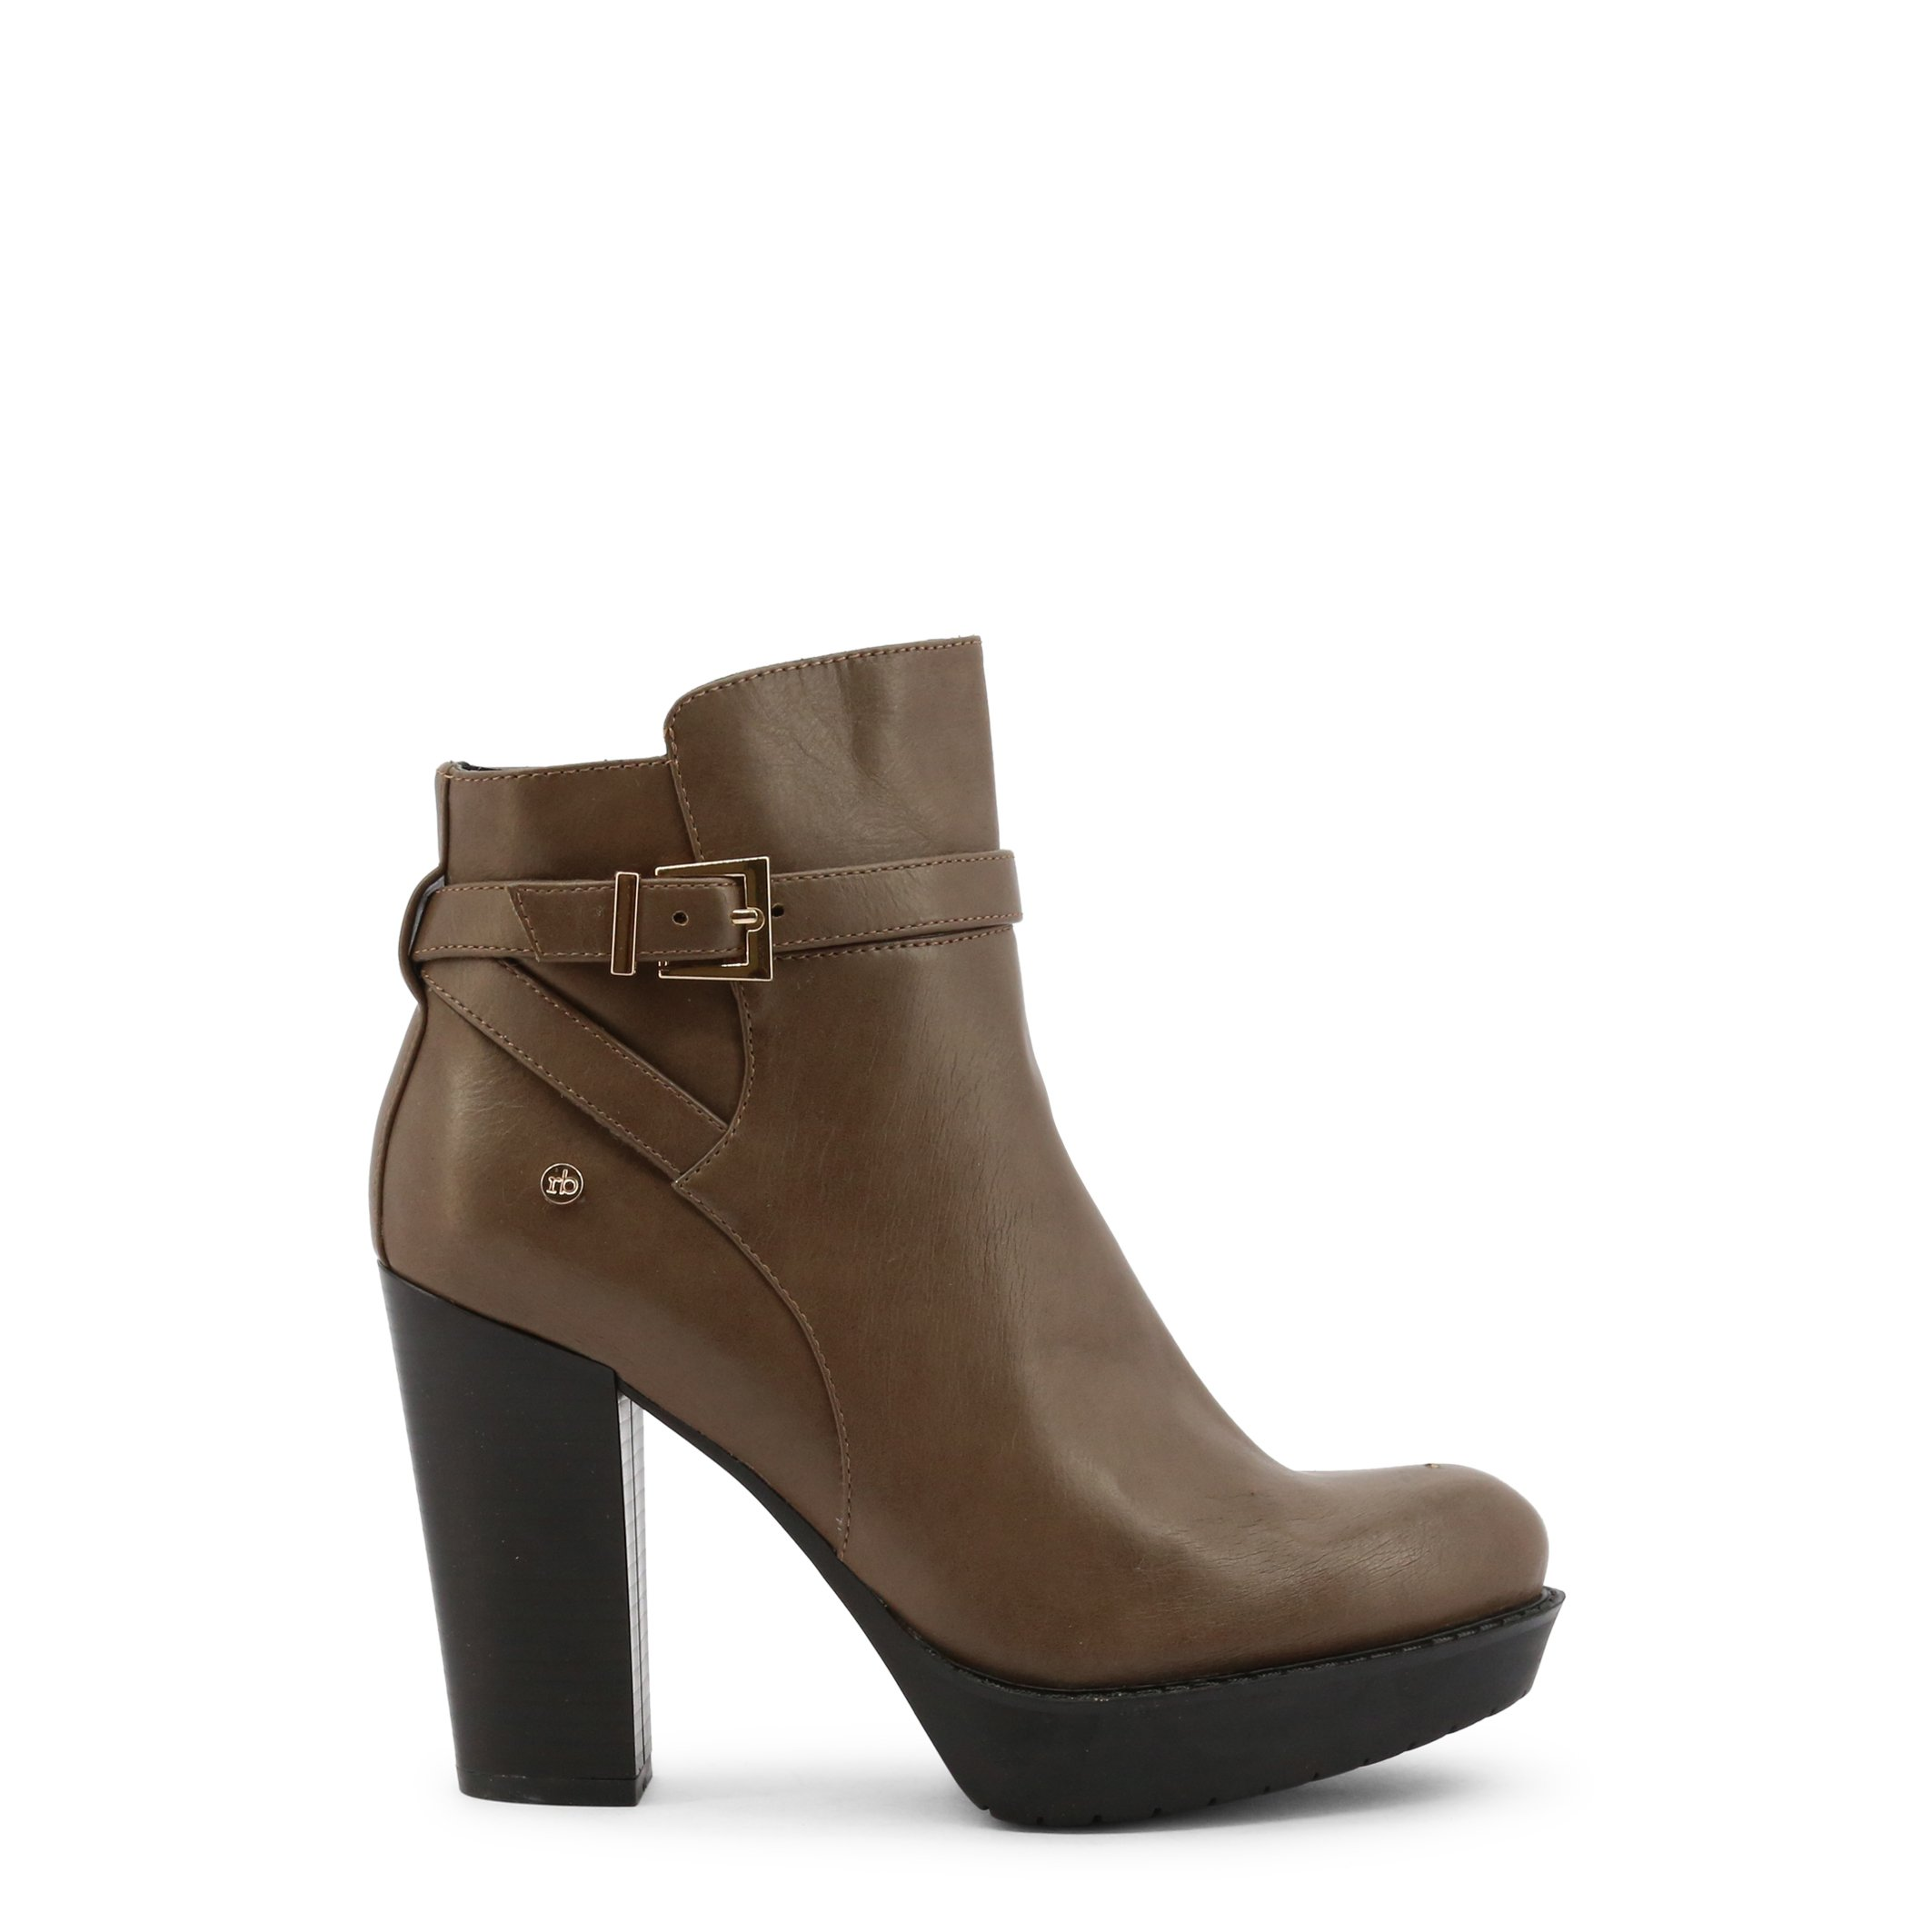 Roccobarocco Women's Ankle Boot Various Colours RBSC1JU02STD - brown EU 37